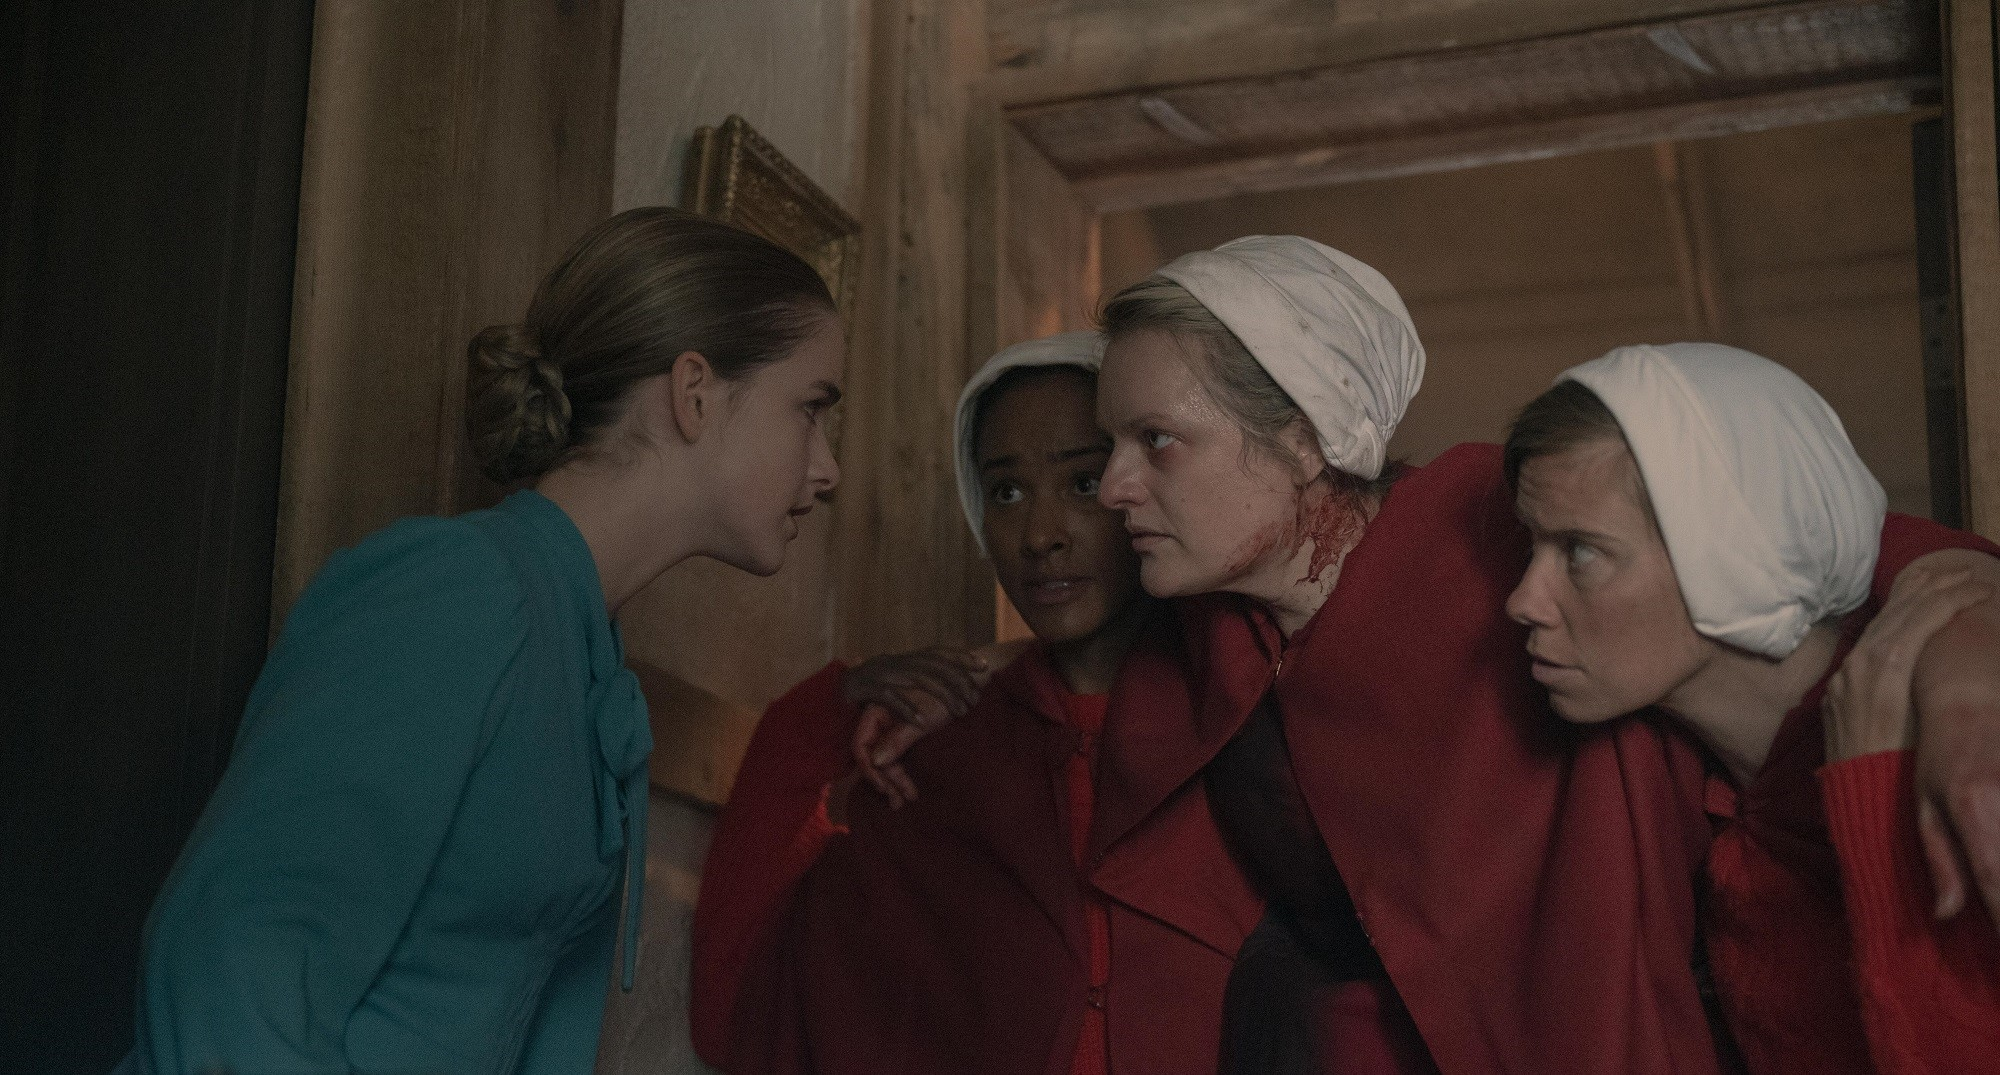 Mckenna Grace and Elisabeth Moss in season 4 episode 1 of 'The Handmaid's Tale'